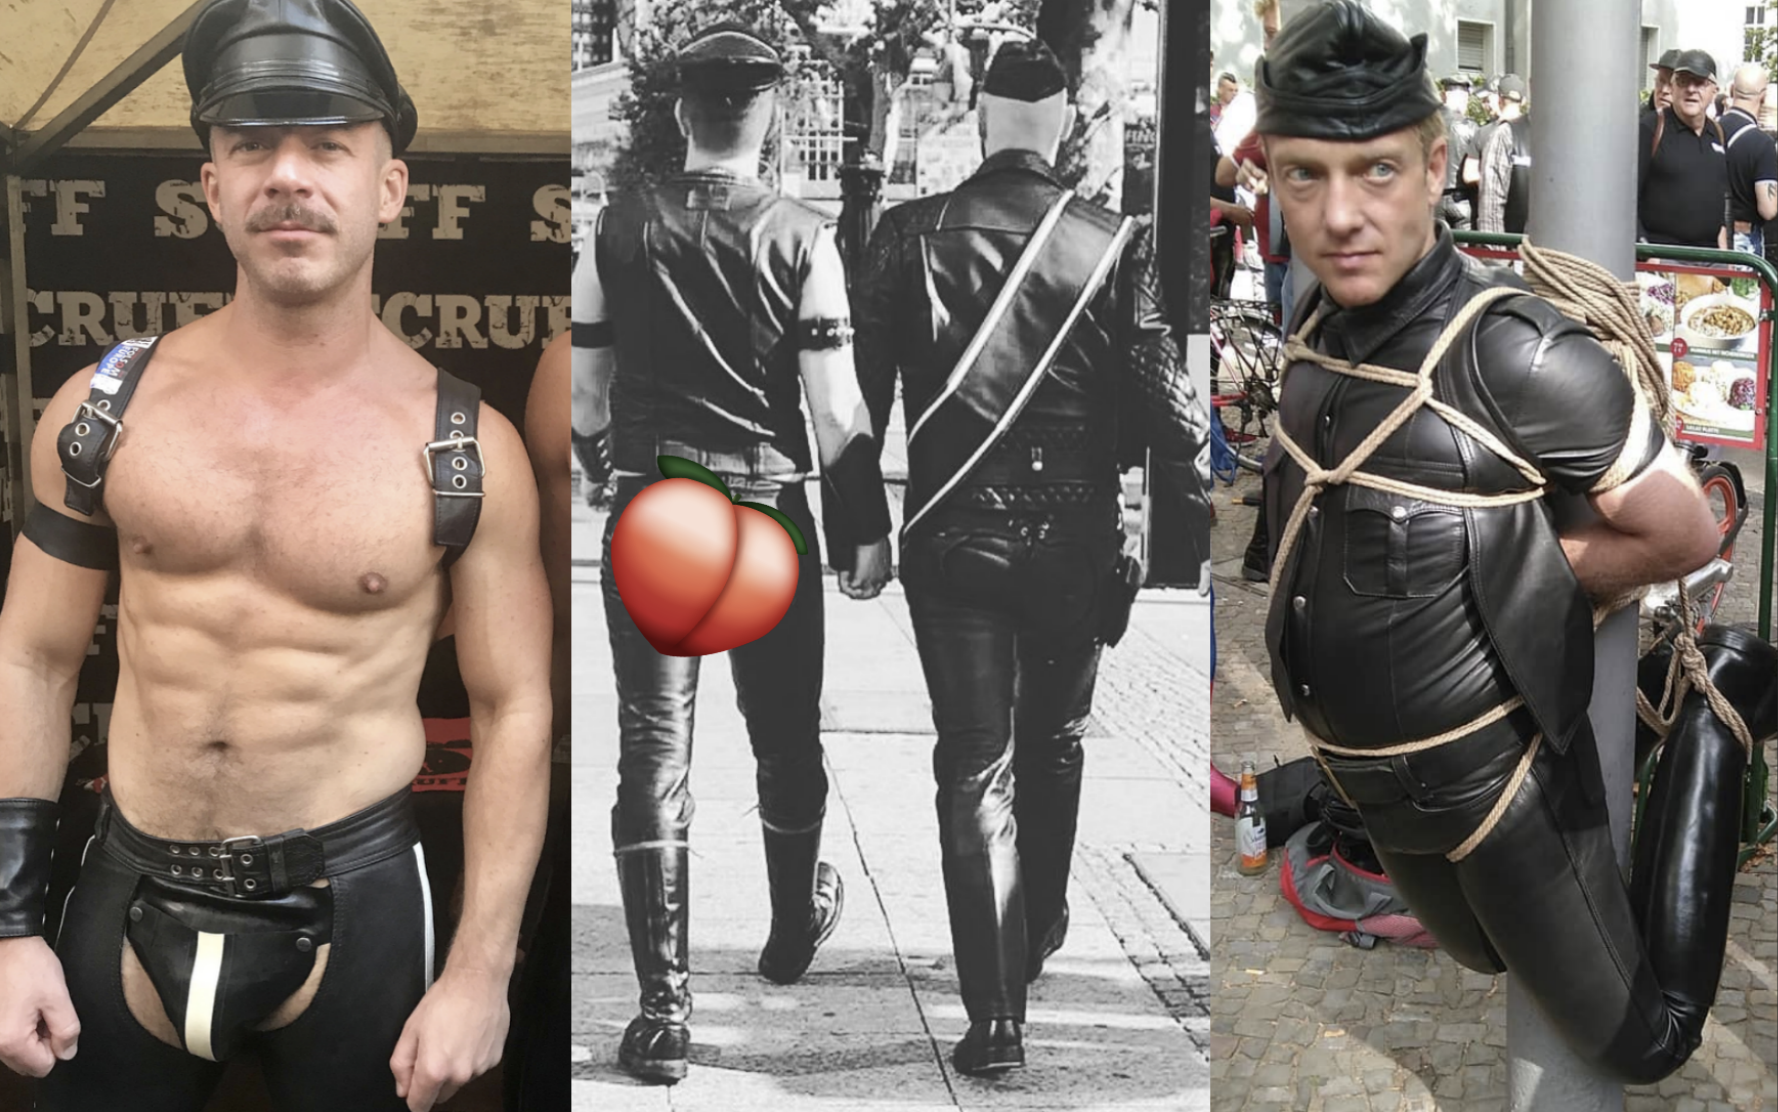 Improbable! porn tsars at folsom street fair sorry, that